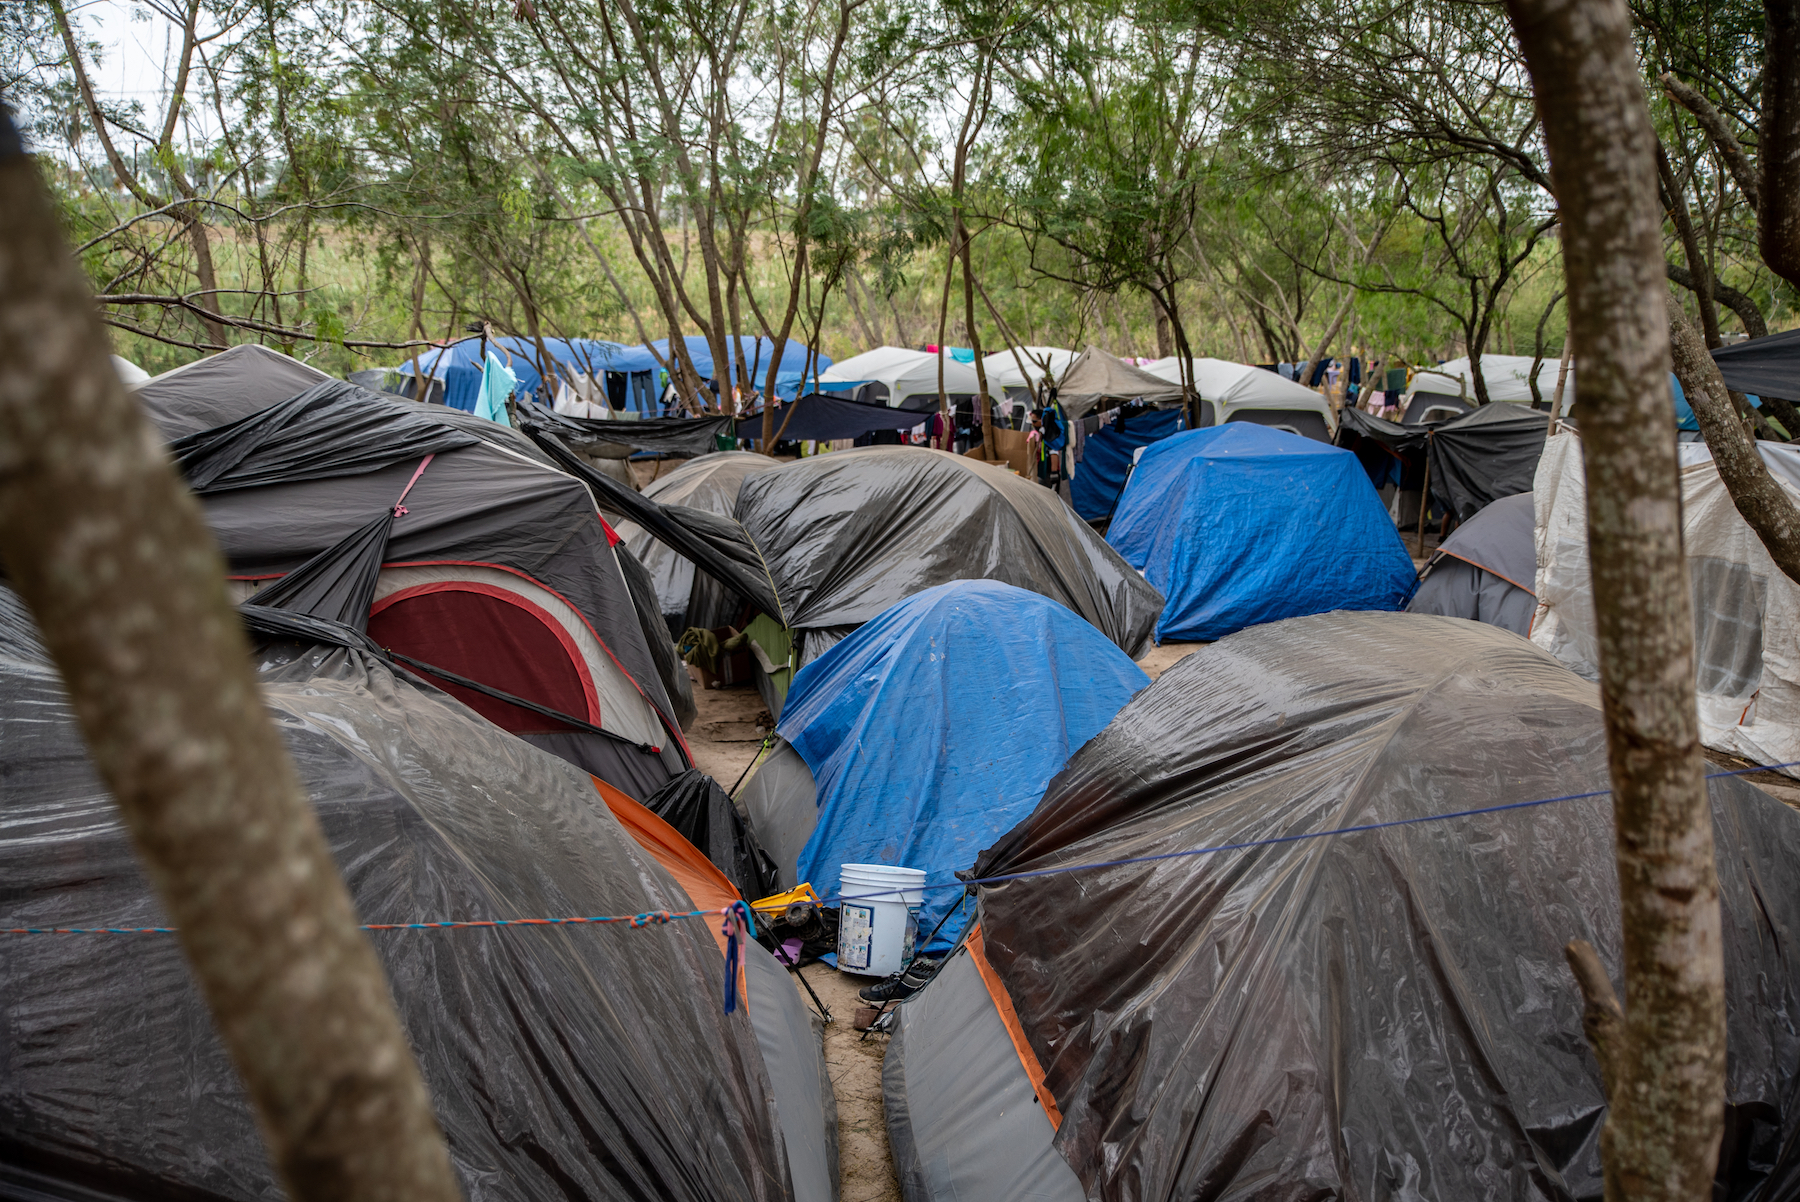 , Desperate Migrants Stuck in Tent Cities on the U.S.-Mexico Border Have One Last Hope: The Supreme Court, Saubio Making Wealth